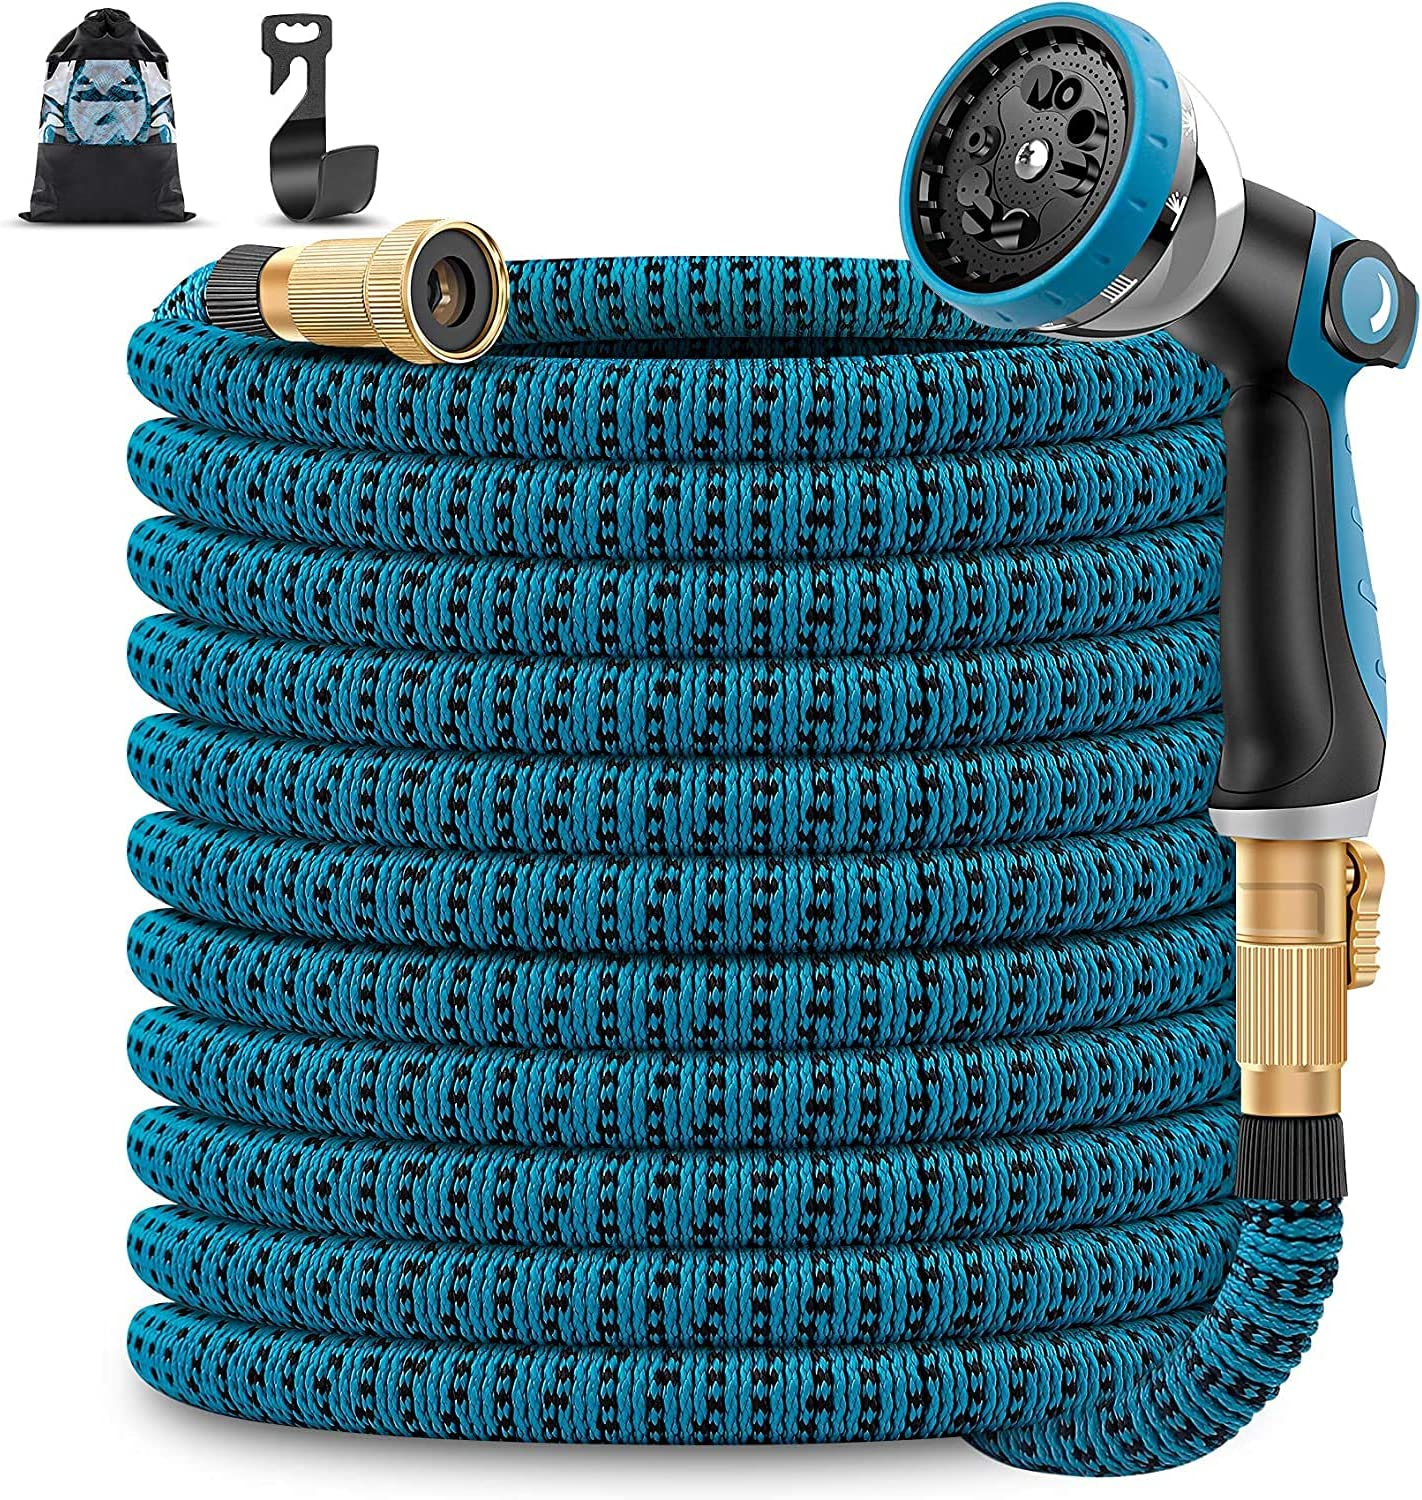 Unywarse Garden Hose 50ft Expandable Water Hose, Expanding Garden Pipe with 10 Function Zinc Nozzle, Solid Brass Fittings, Extra Strength Fabric, Lightweight Yard Hose for Watering and Washing